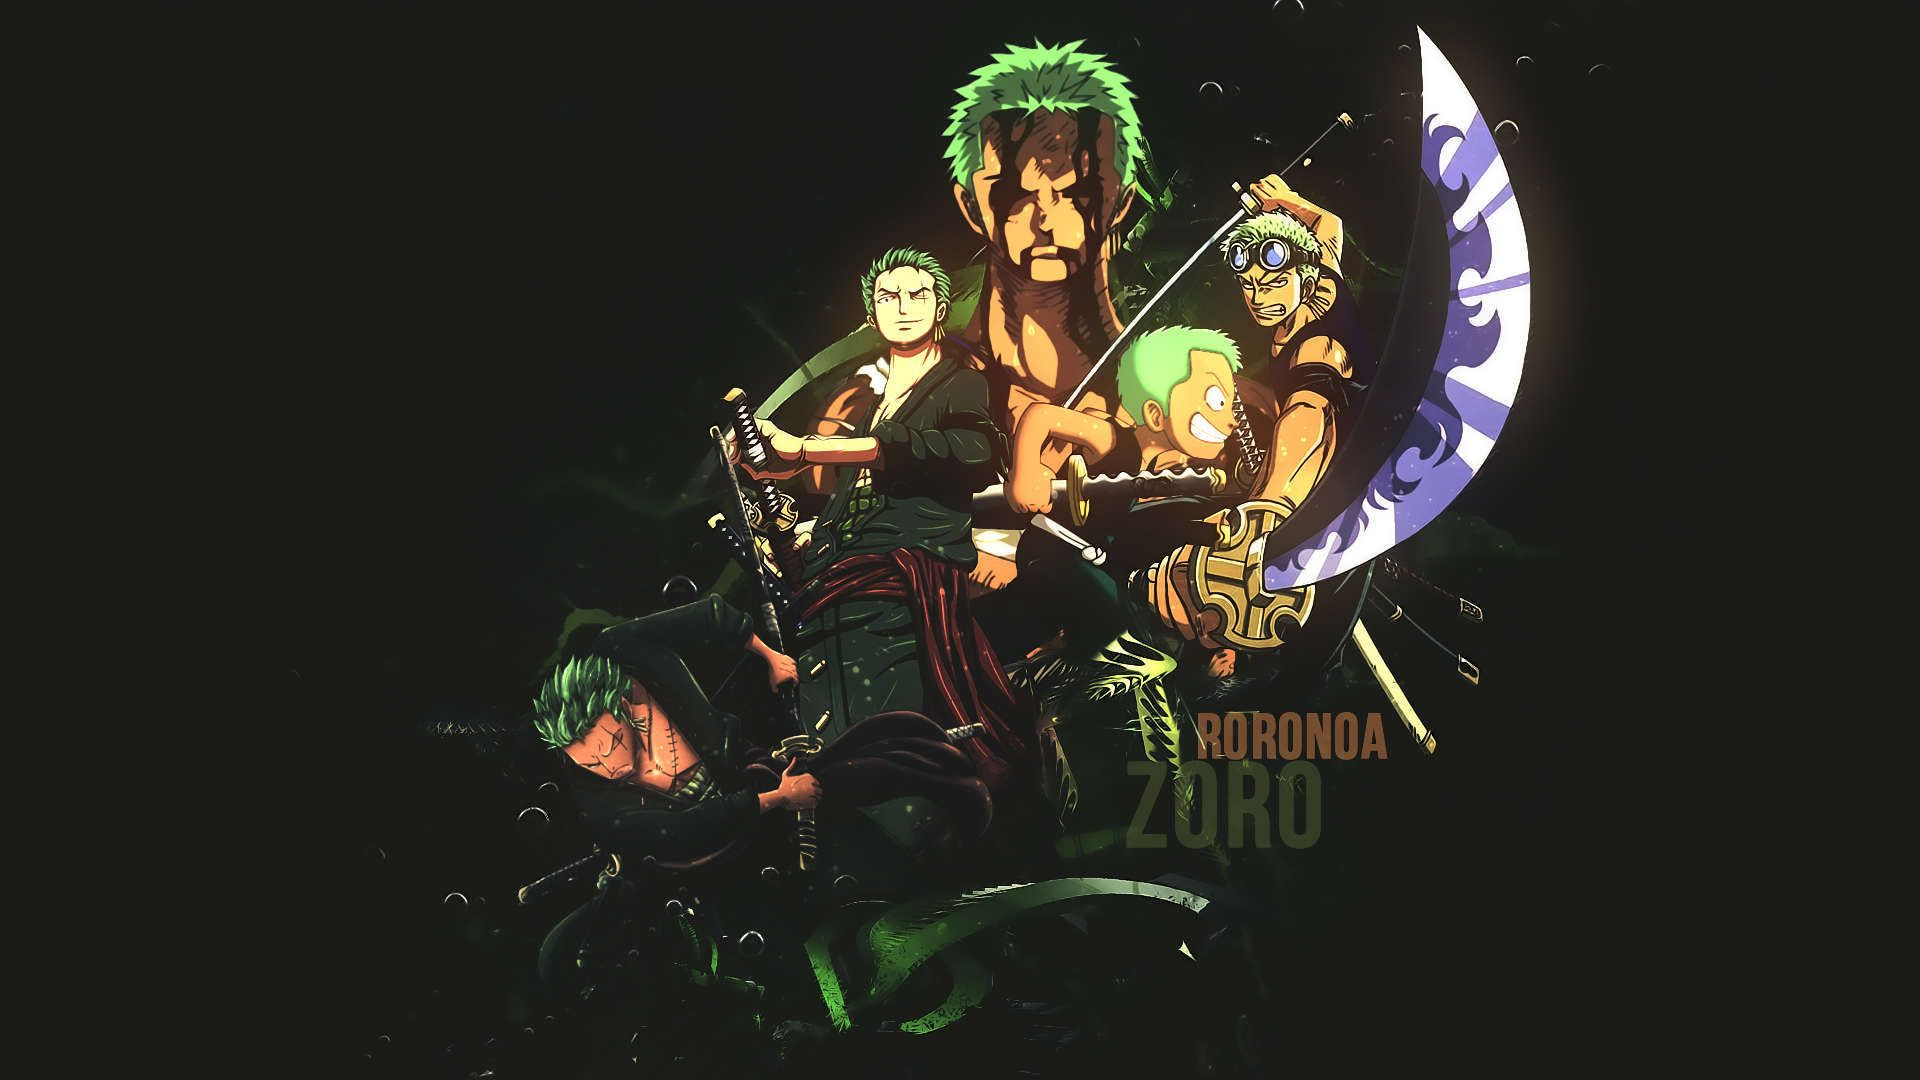 One Piece Zoro Hd Wallpapers Anime Wallpaper Roronoa Zoro Hd Wallpaper